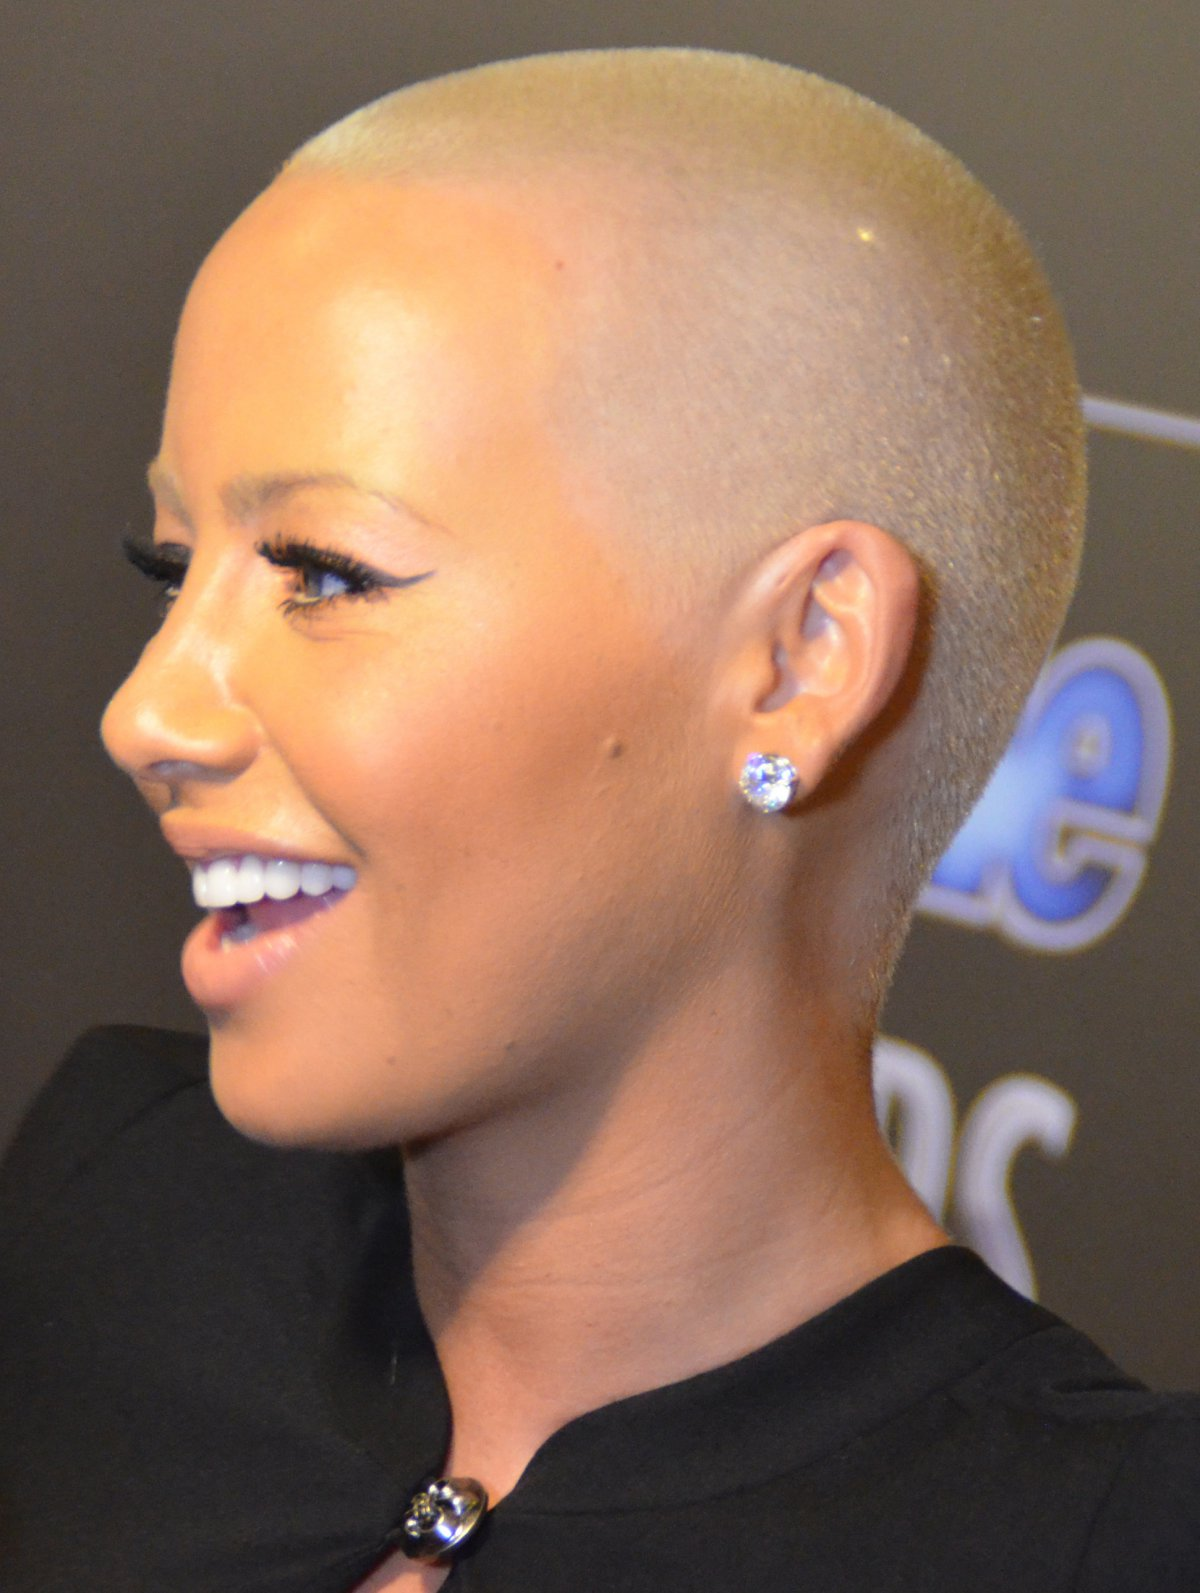 Amber rose kim kardashian appear to call truce after khalifa west get more reality tv world follow us on twitter like us on facebook or add our rss feed ccuart Gallery